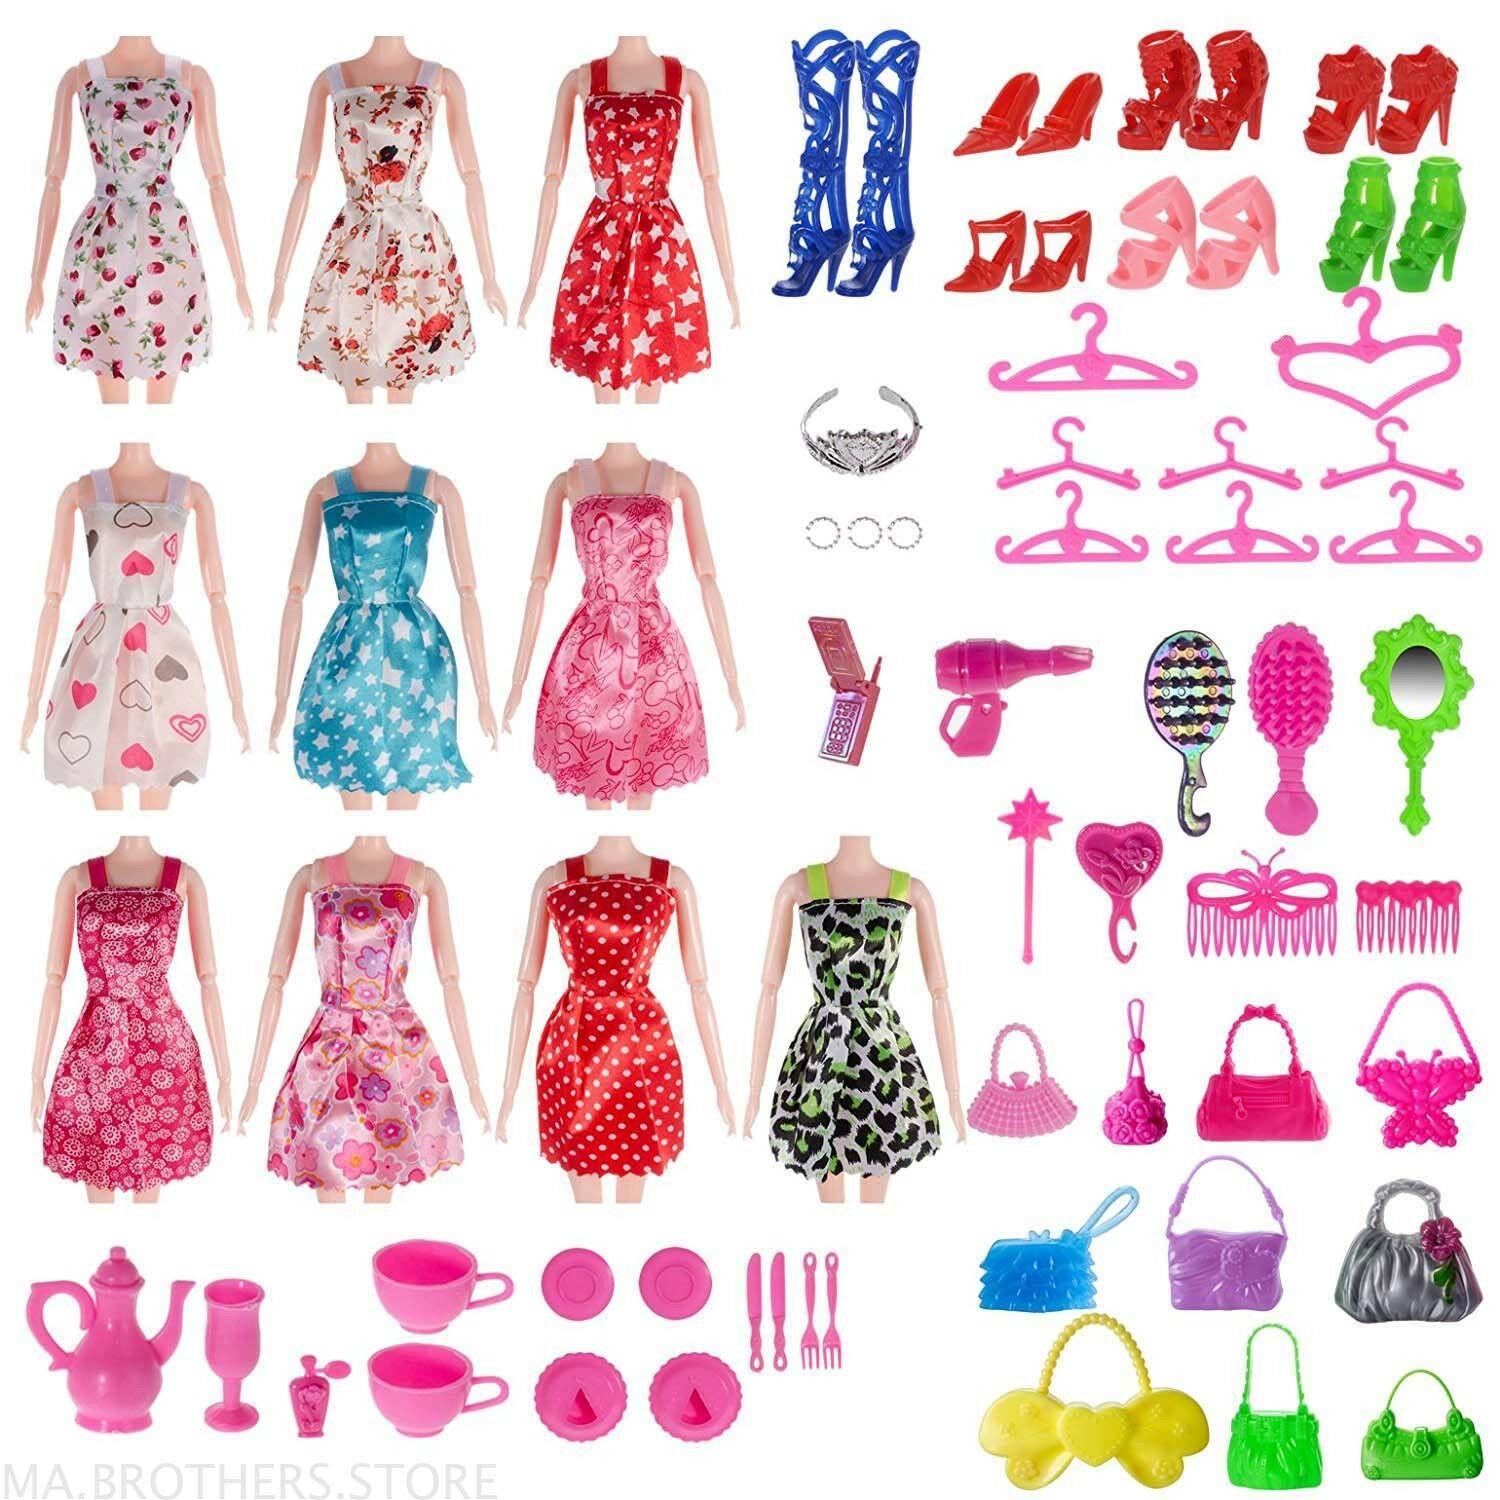 Купить Unbranded - 120 PCS Doll Clothes Lot Party Gown Outfits Barbie Dress Accessories Xmas Gift